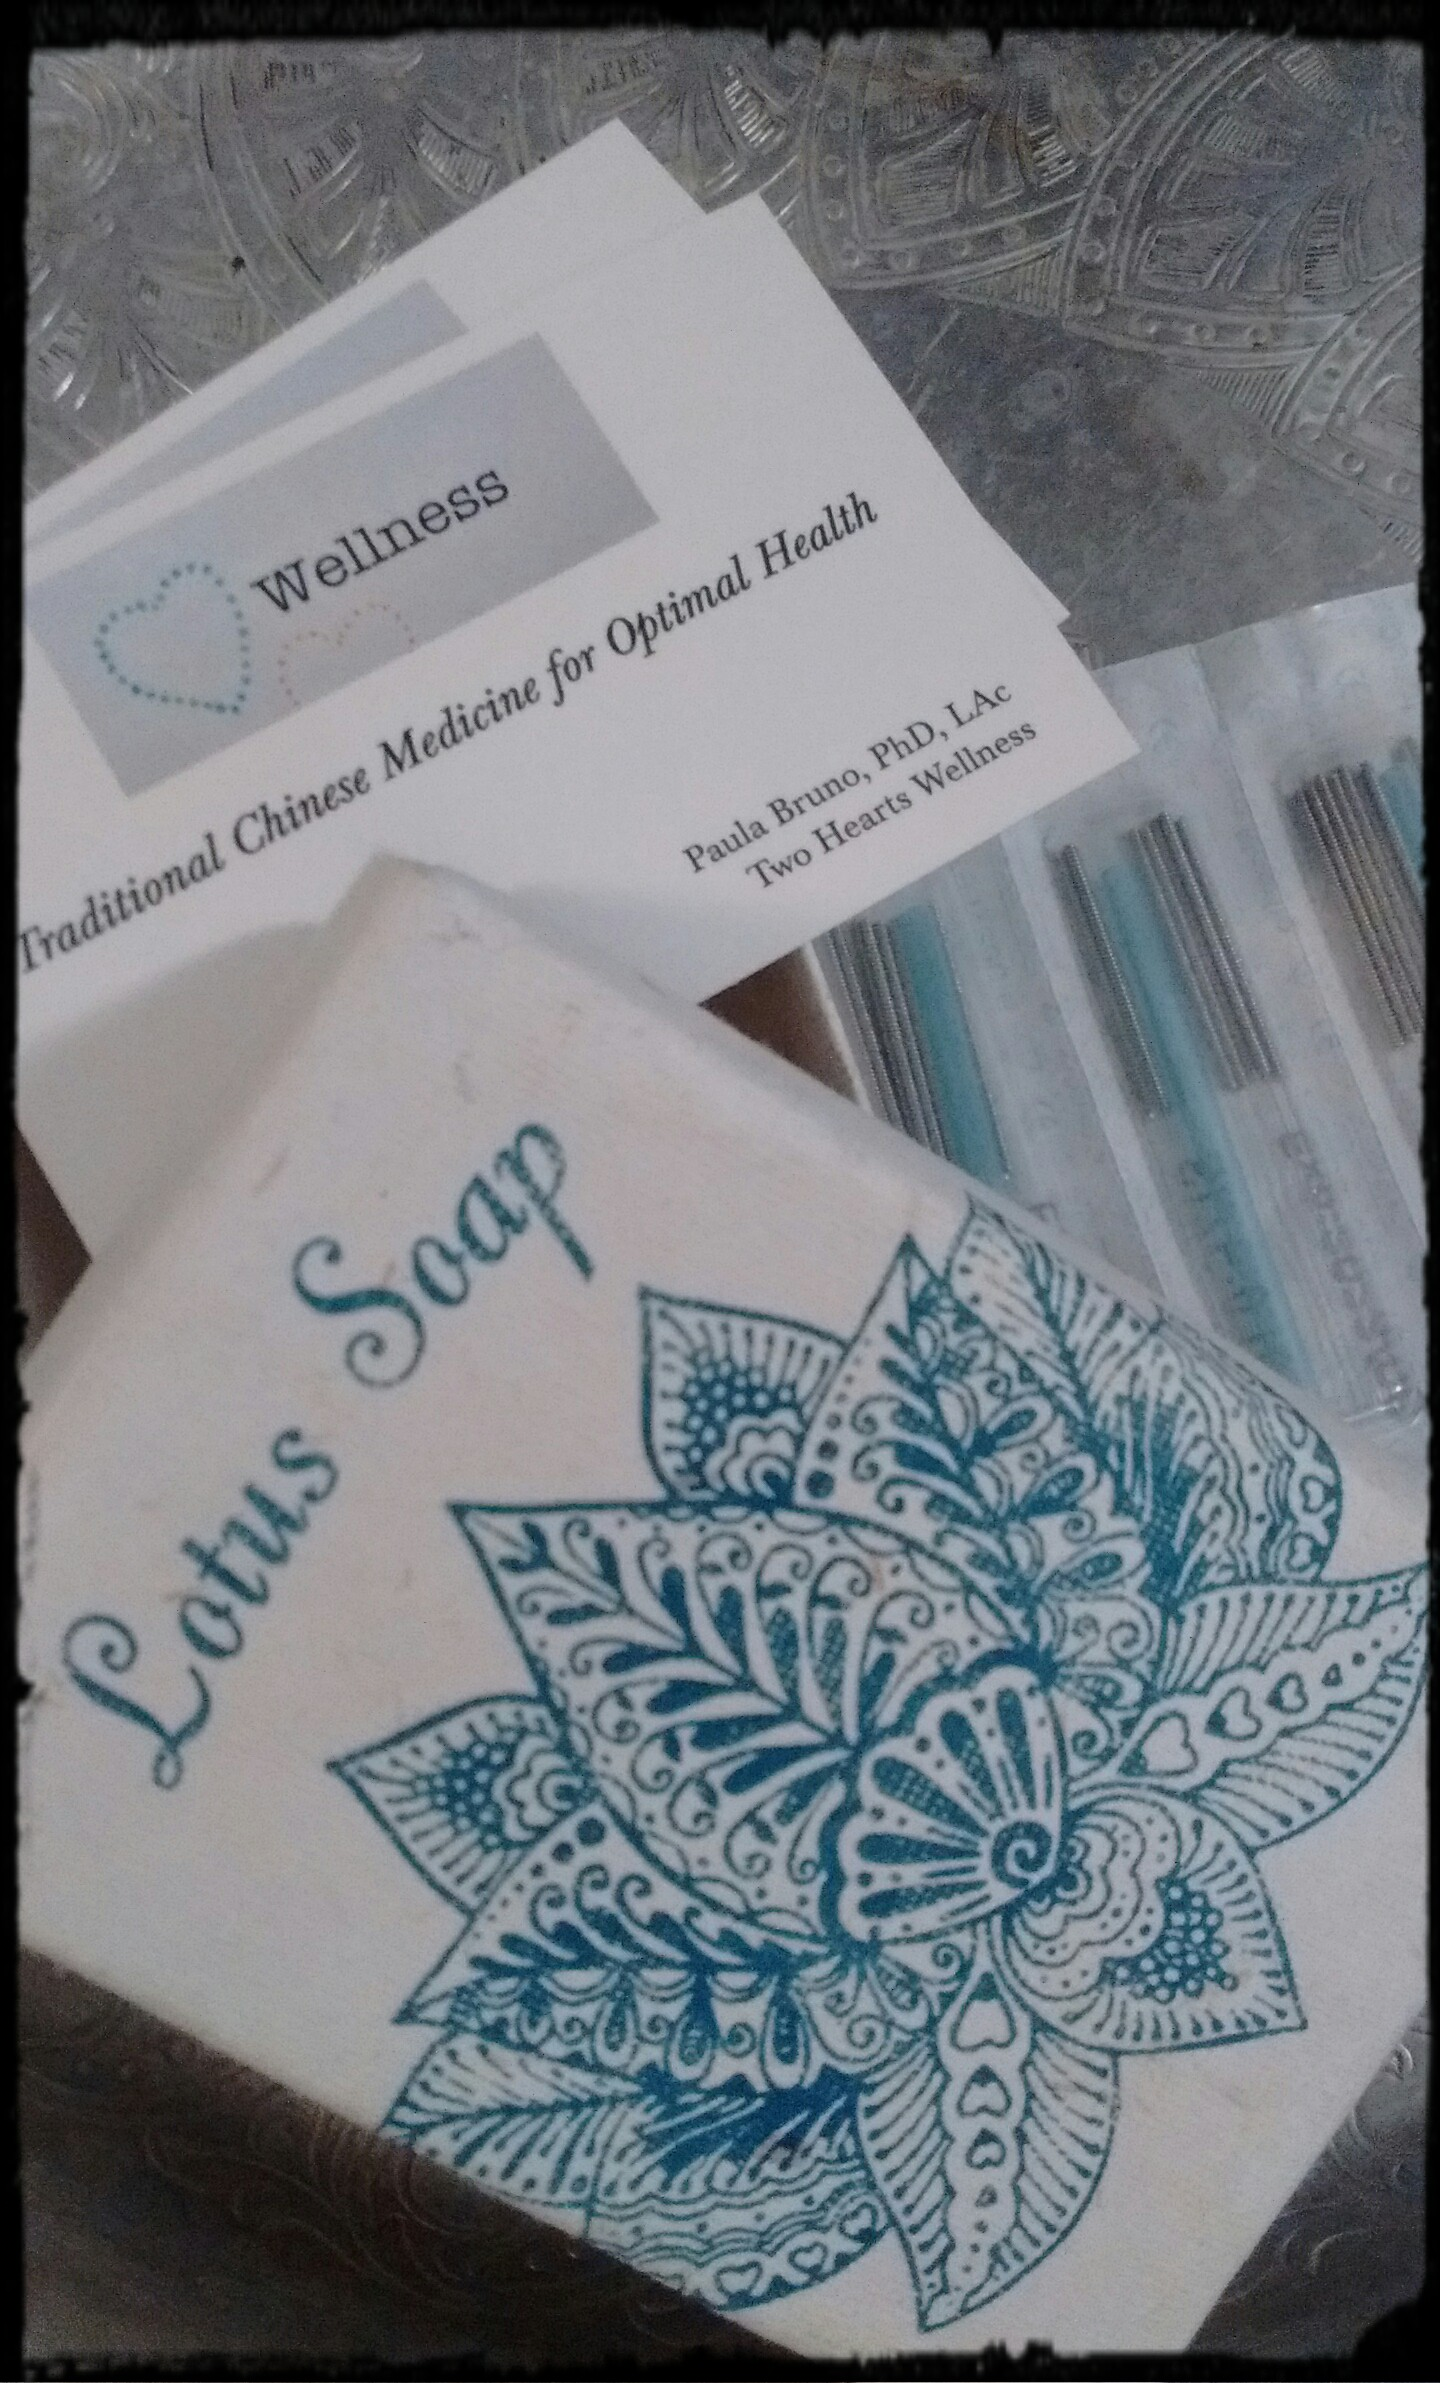 Two Hearts Wellness business card, acupuncture needles in 10-pack packets, & lotus soap package